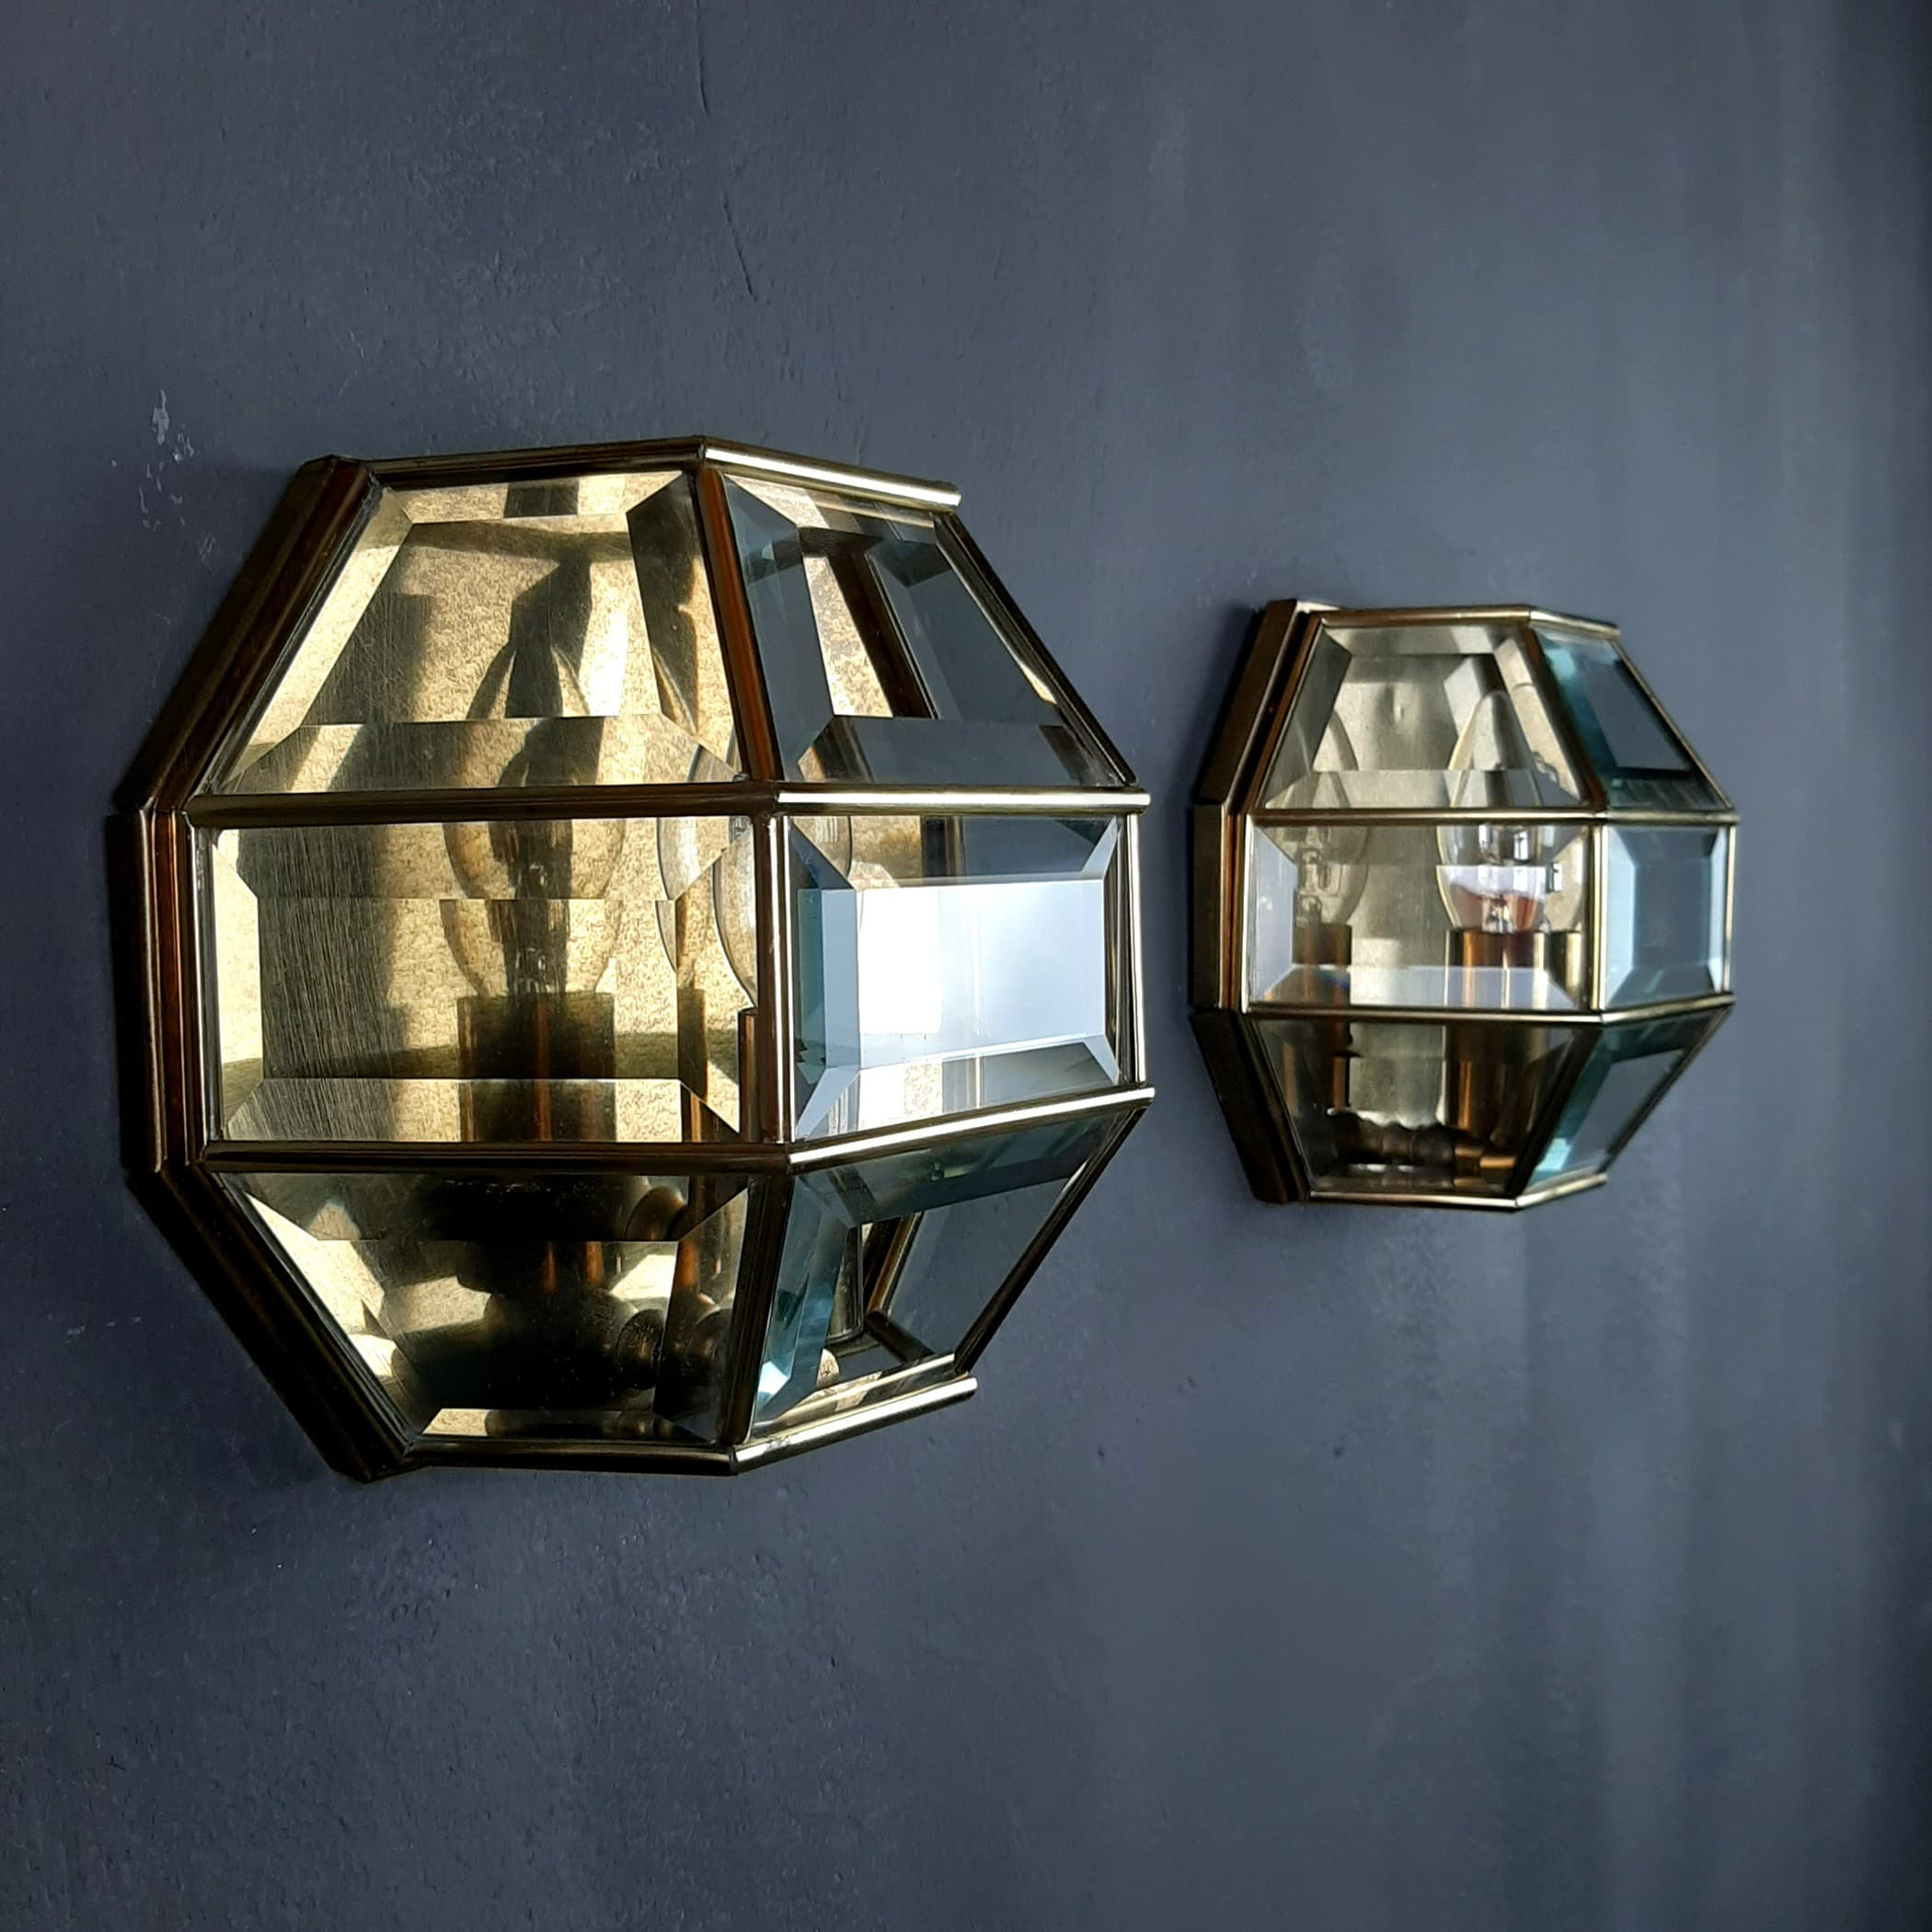 Pair of vintage diamond sconces Italy 1960s Gold brass hex crystal wall lamp